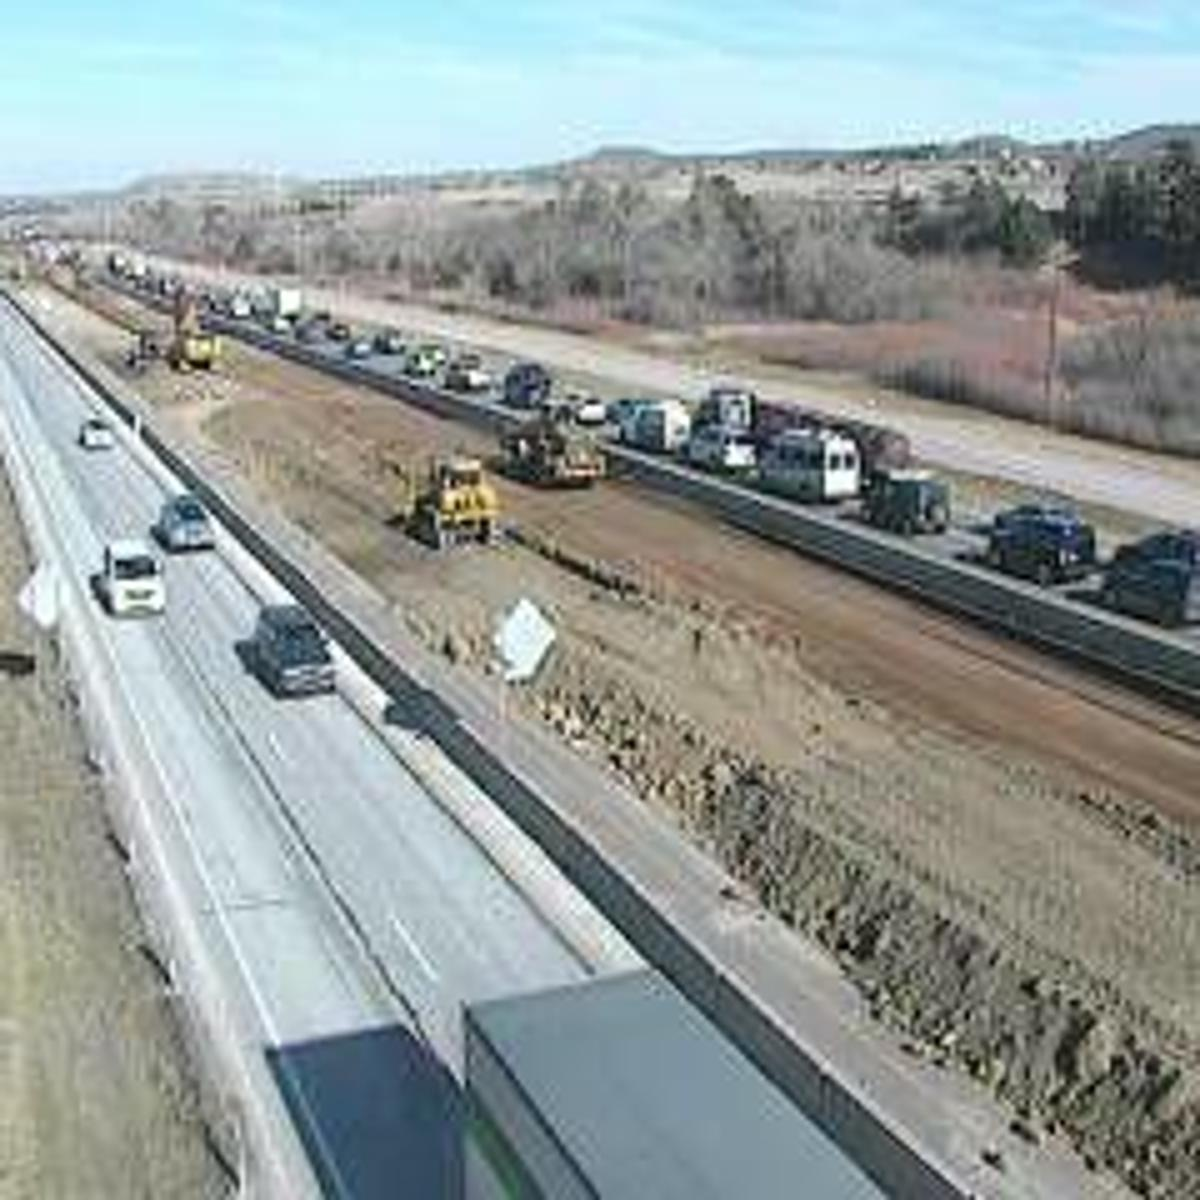 Thursday's traffic: Traffic backed up on northbound I-25 in